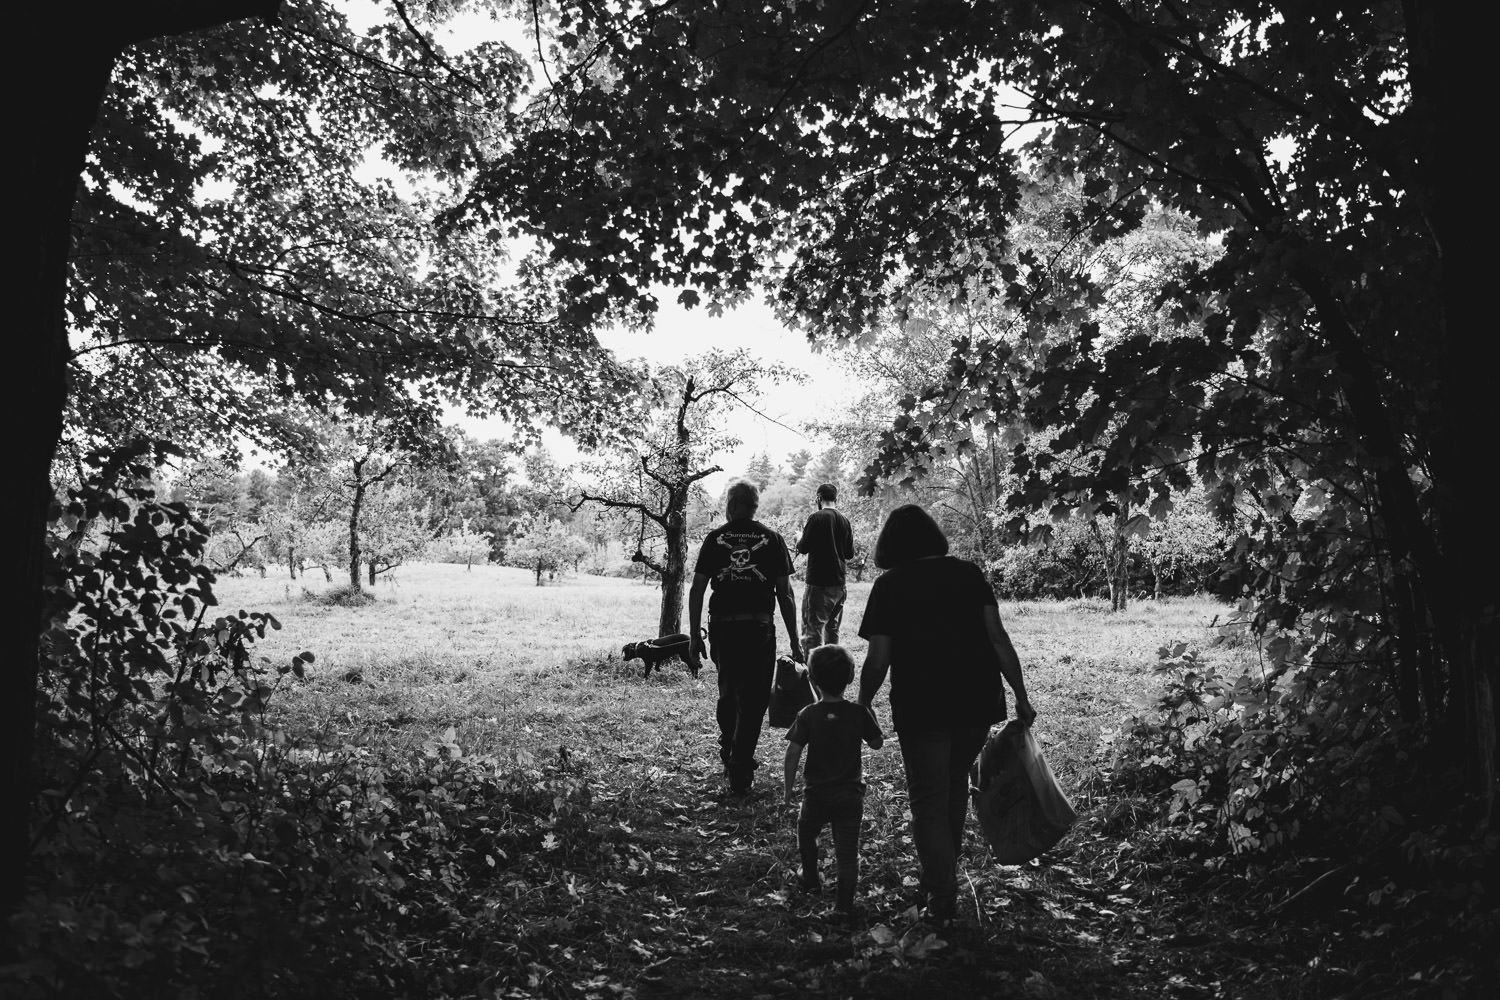 A family walks through the trees of an apple orchard.